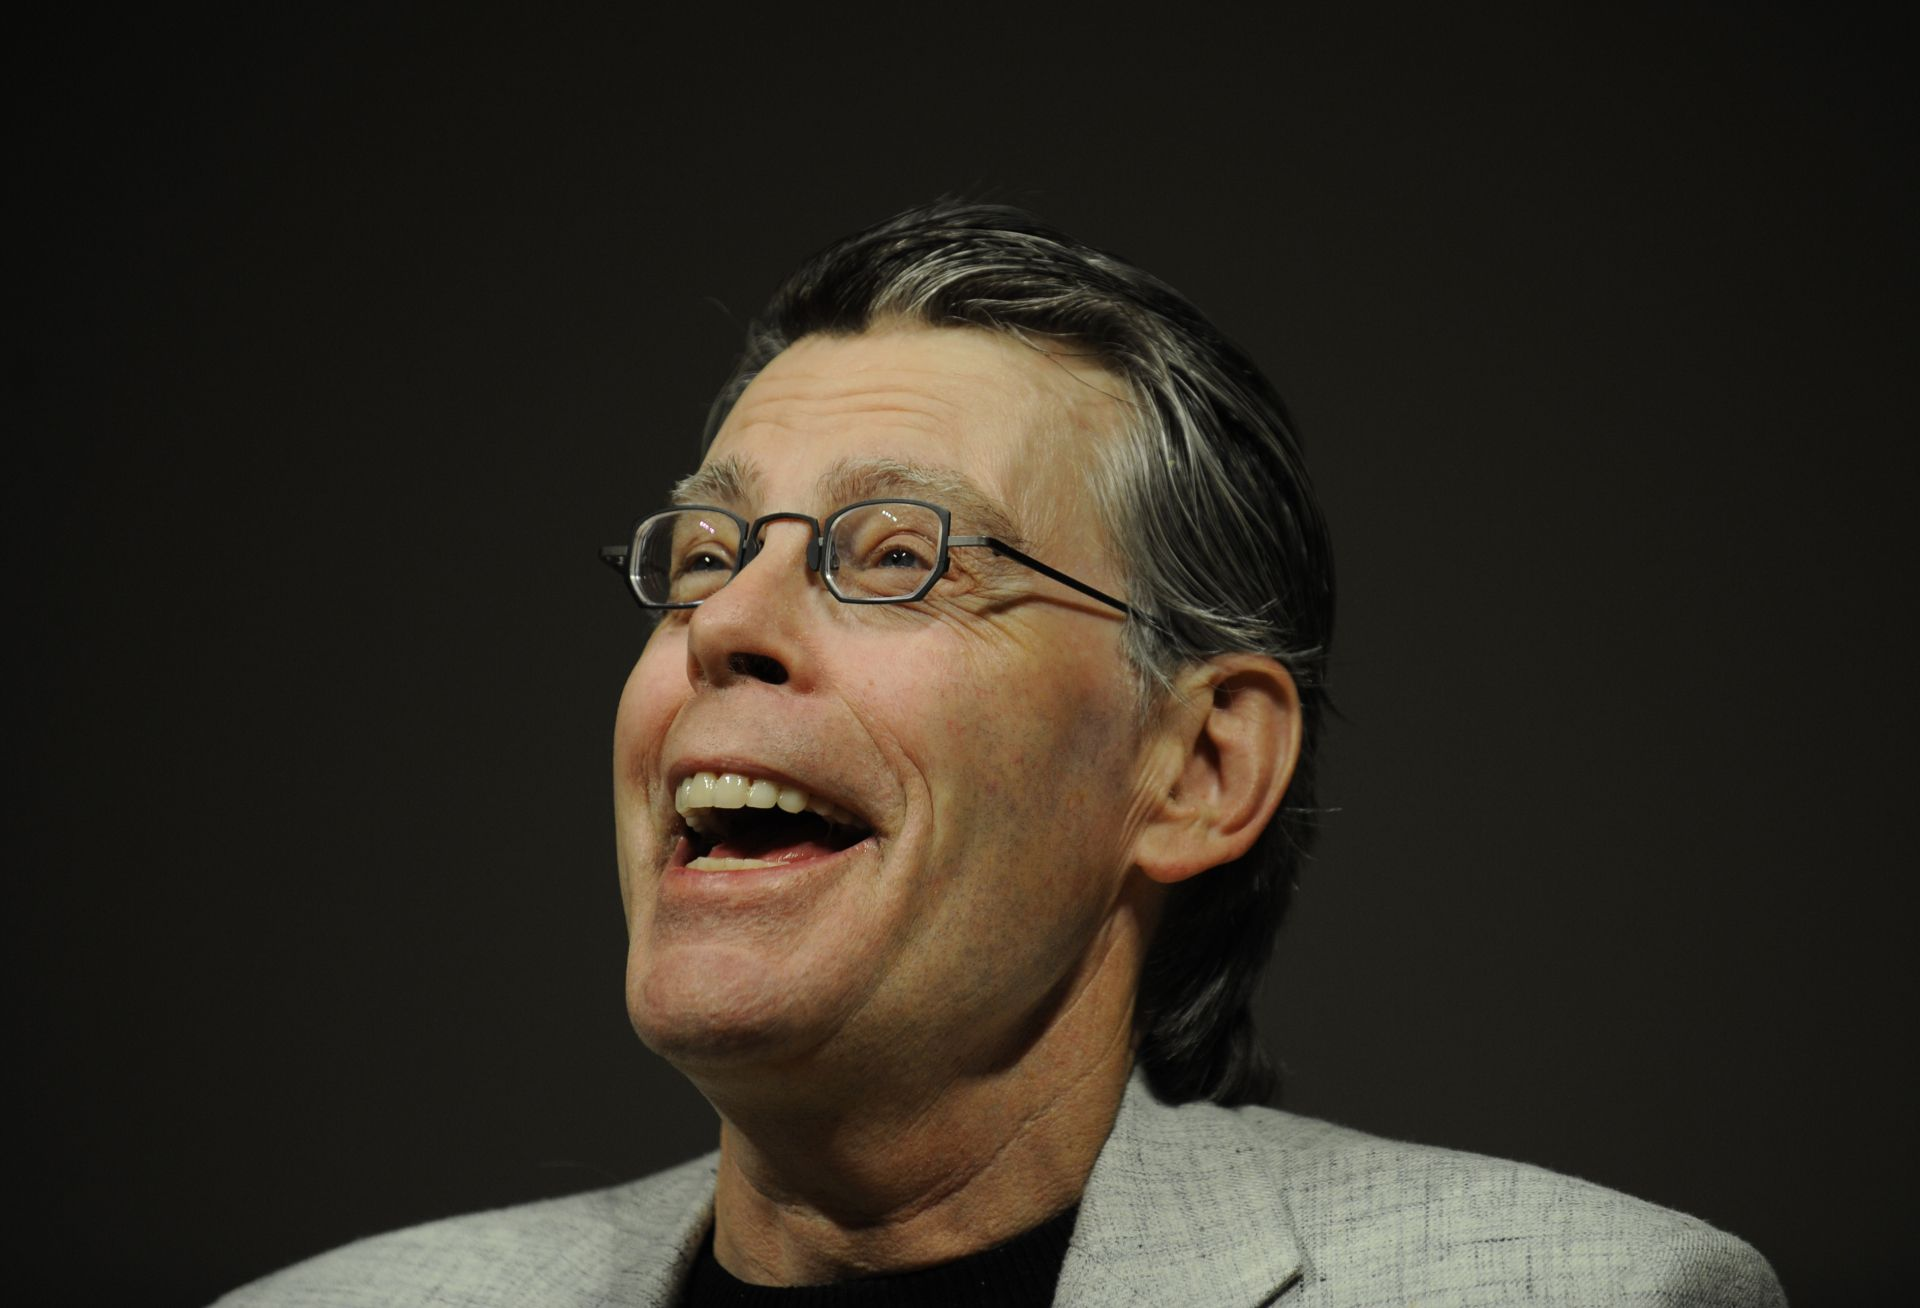 US best-selling author Stephen King talks, during a press conference to unveil the Kindle 2, the latest version of Amazon's popular electronic reader, the Kindle, in New York, February, 9, 2009. The Kindle 2 adds a feature which reads a book aloud, is thinner, faster, crisper, with longer battery life, and capable of holding hundreds more books, Bezos said. The Kindle 2 costs 359 USD, available from amazon.com. and the first units will be shipped February 24. AFP PHOTO/Emmanuel Dunand